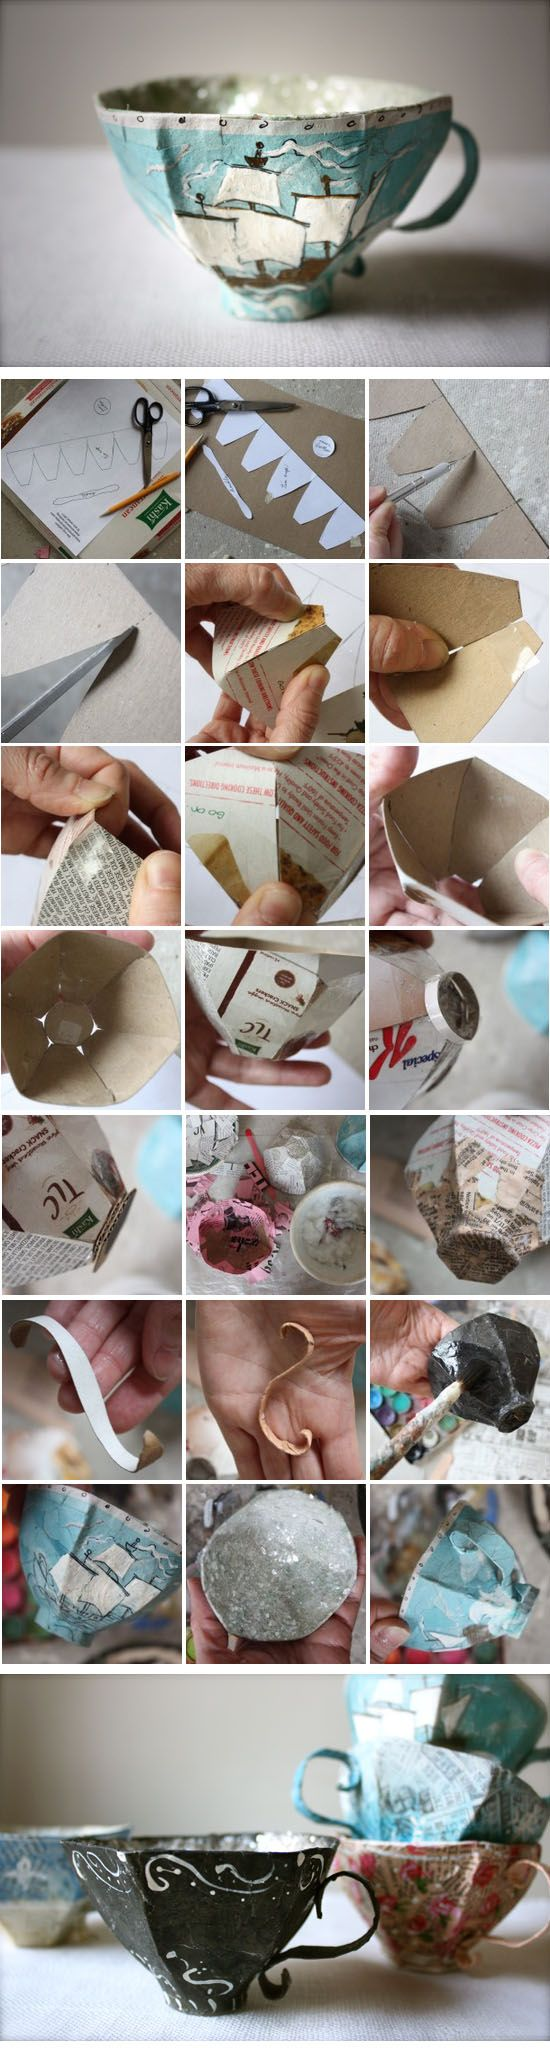 DIY :: paper mache teacup ( http://annwood.net/blog/2011/02/24/paper-mache-teacup-pattern/ )